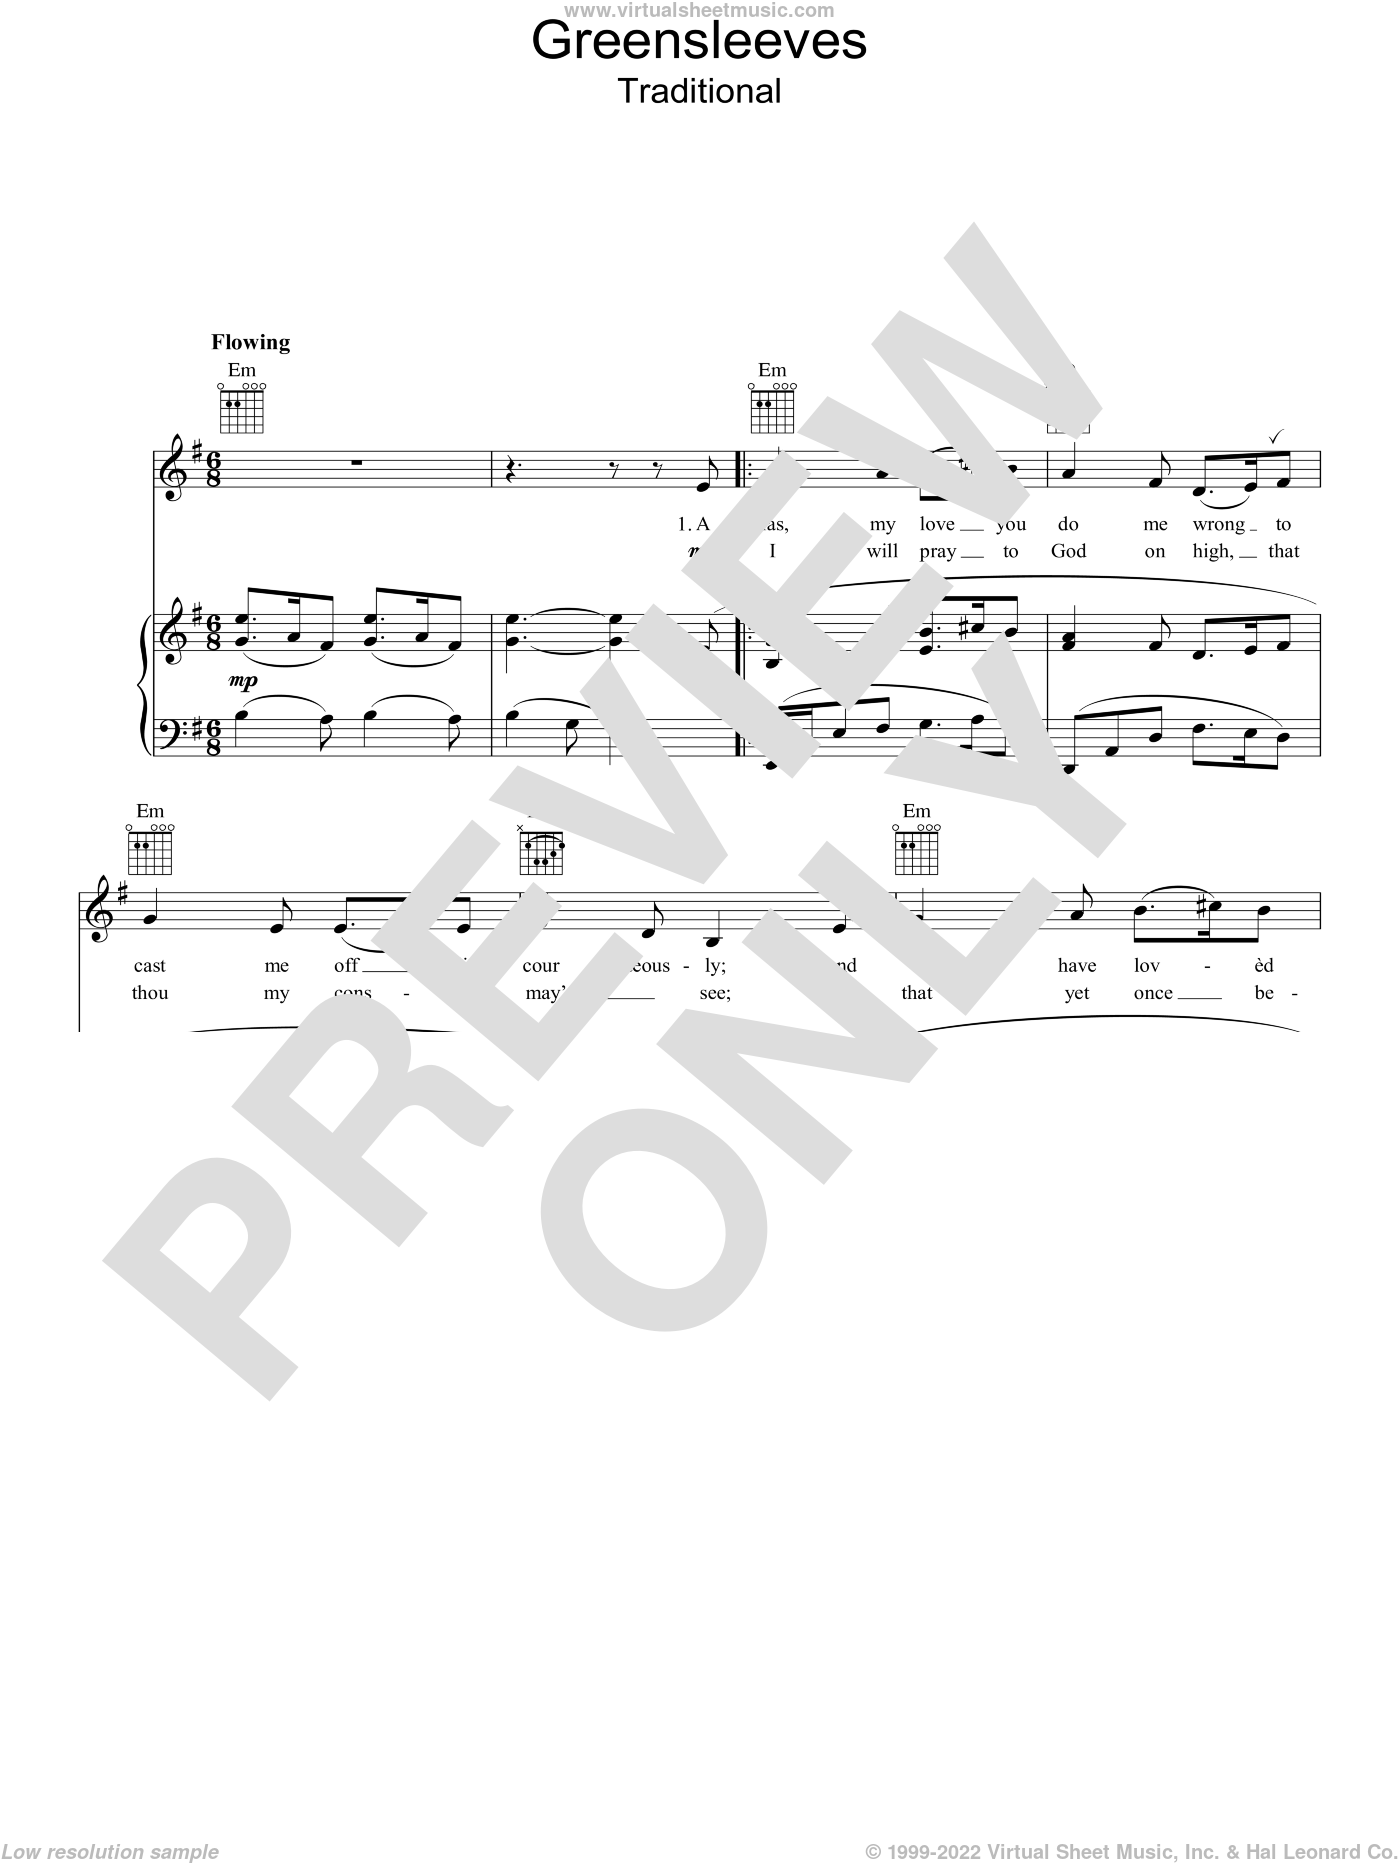 Greensleeves sheet music for voice, piano or guitar, intermediate skill level